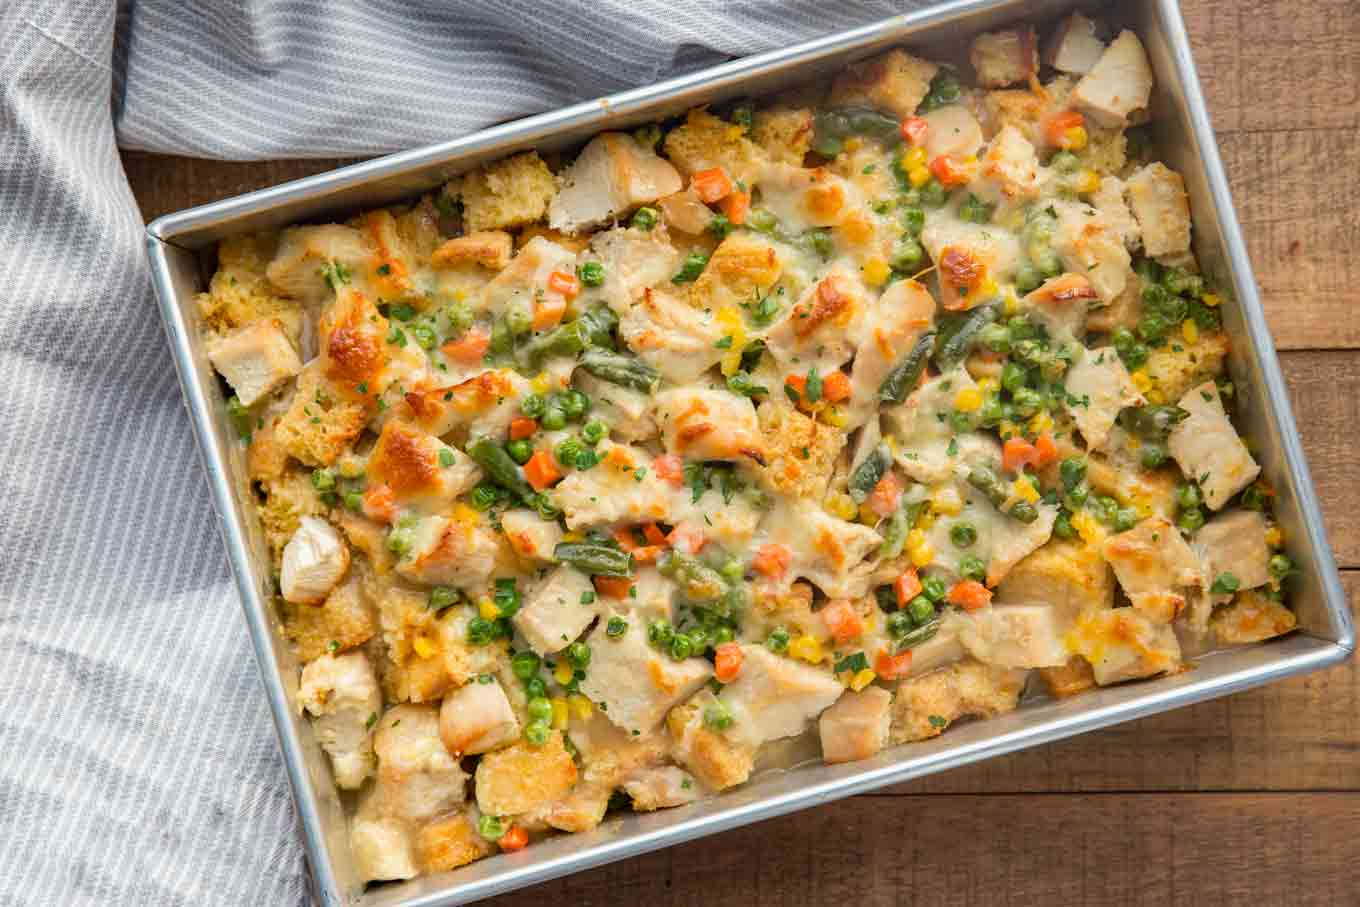 Leftover Turkey Casserole